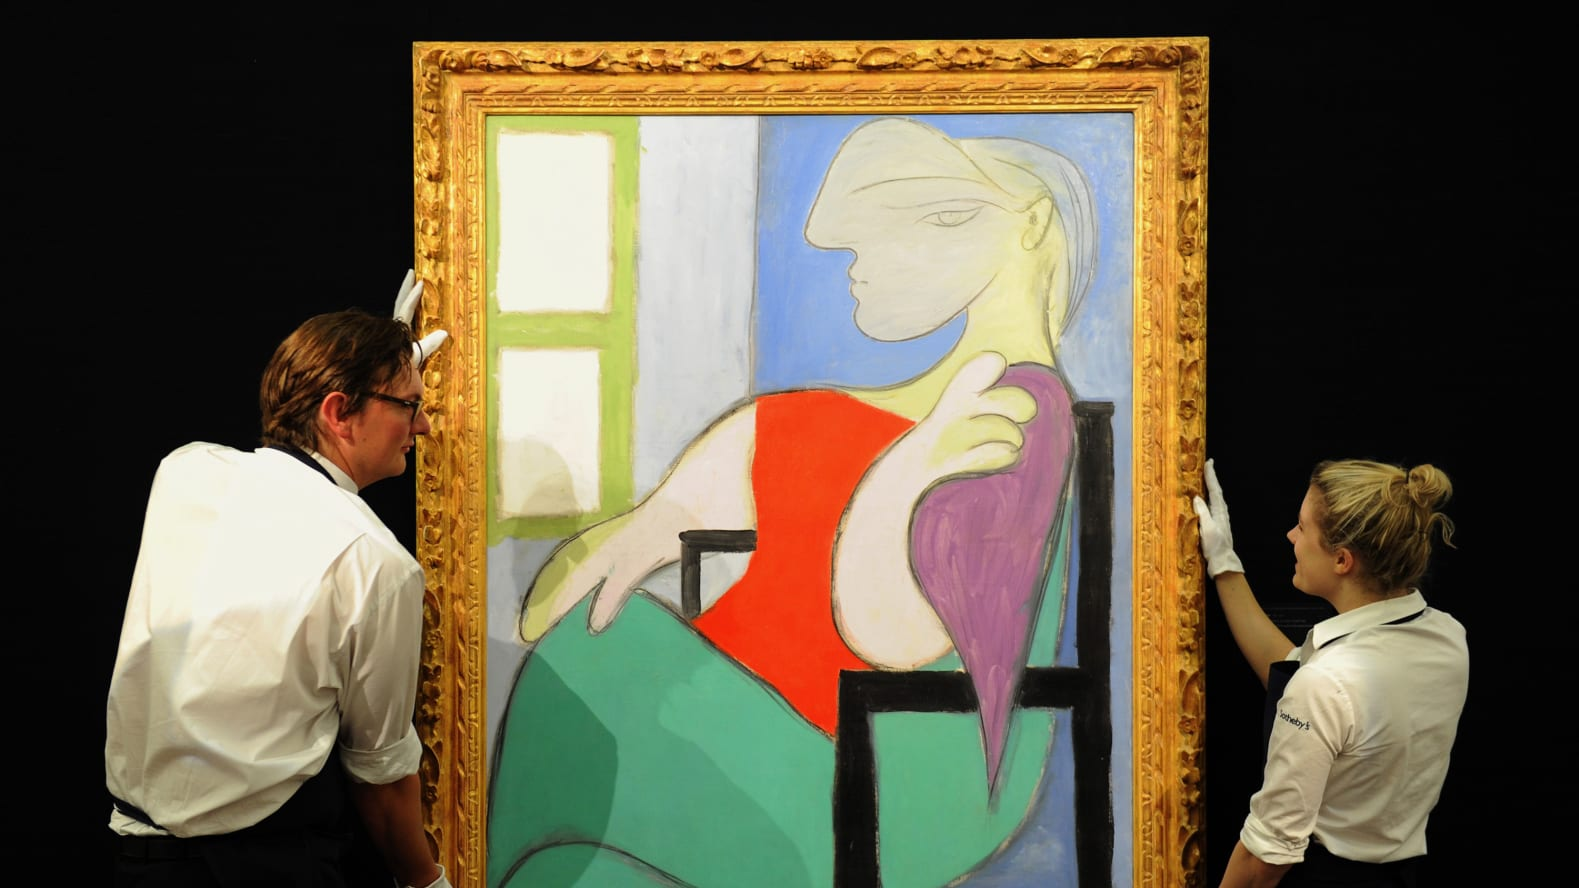 Picasso's Portrait Of A Young Lover To Sell For $55 Million At Auction